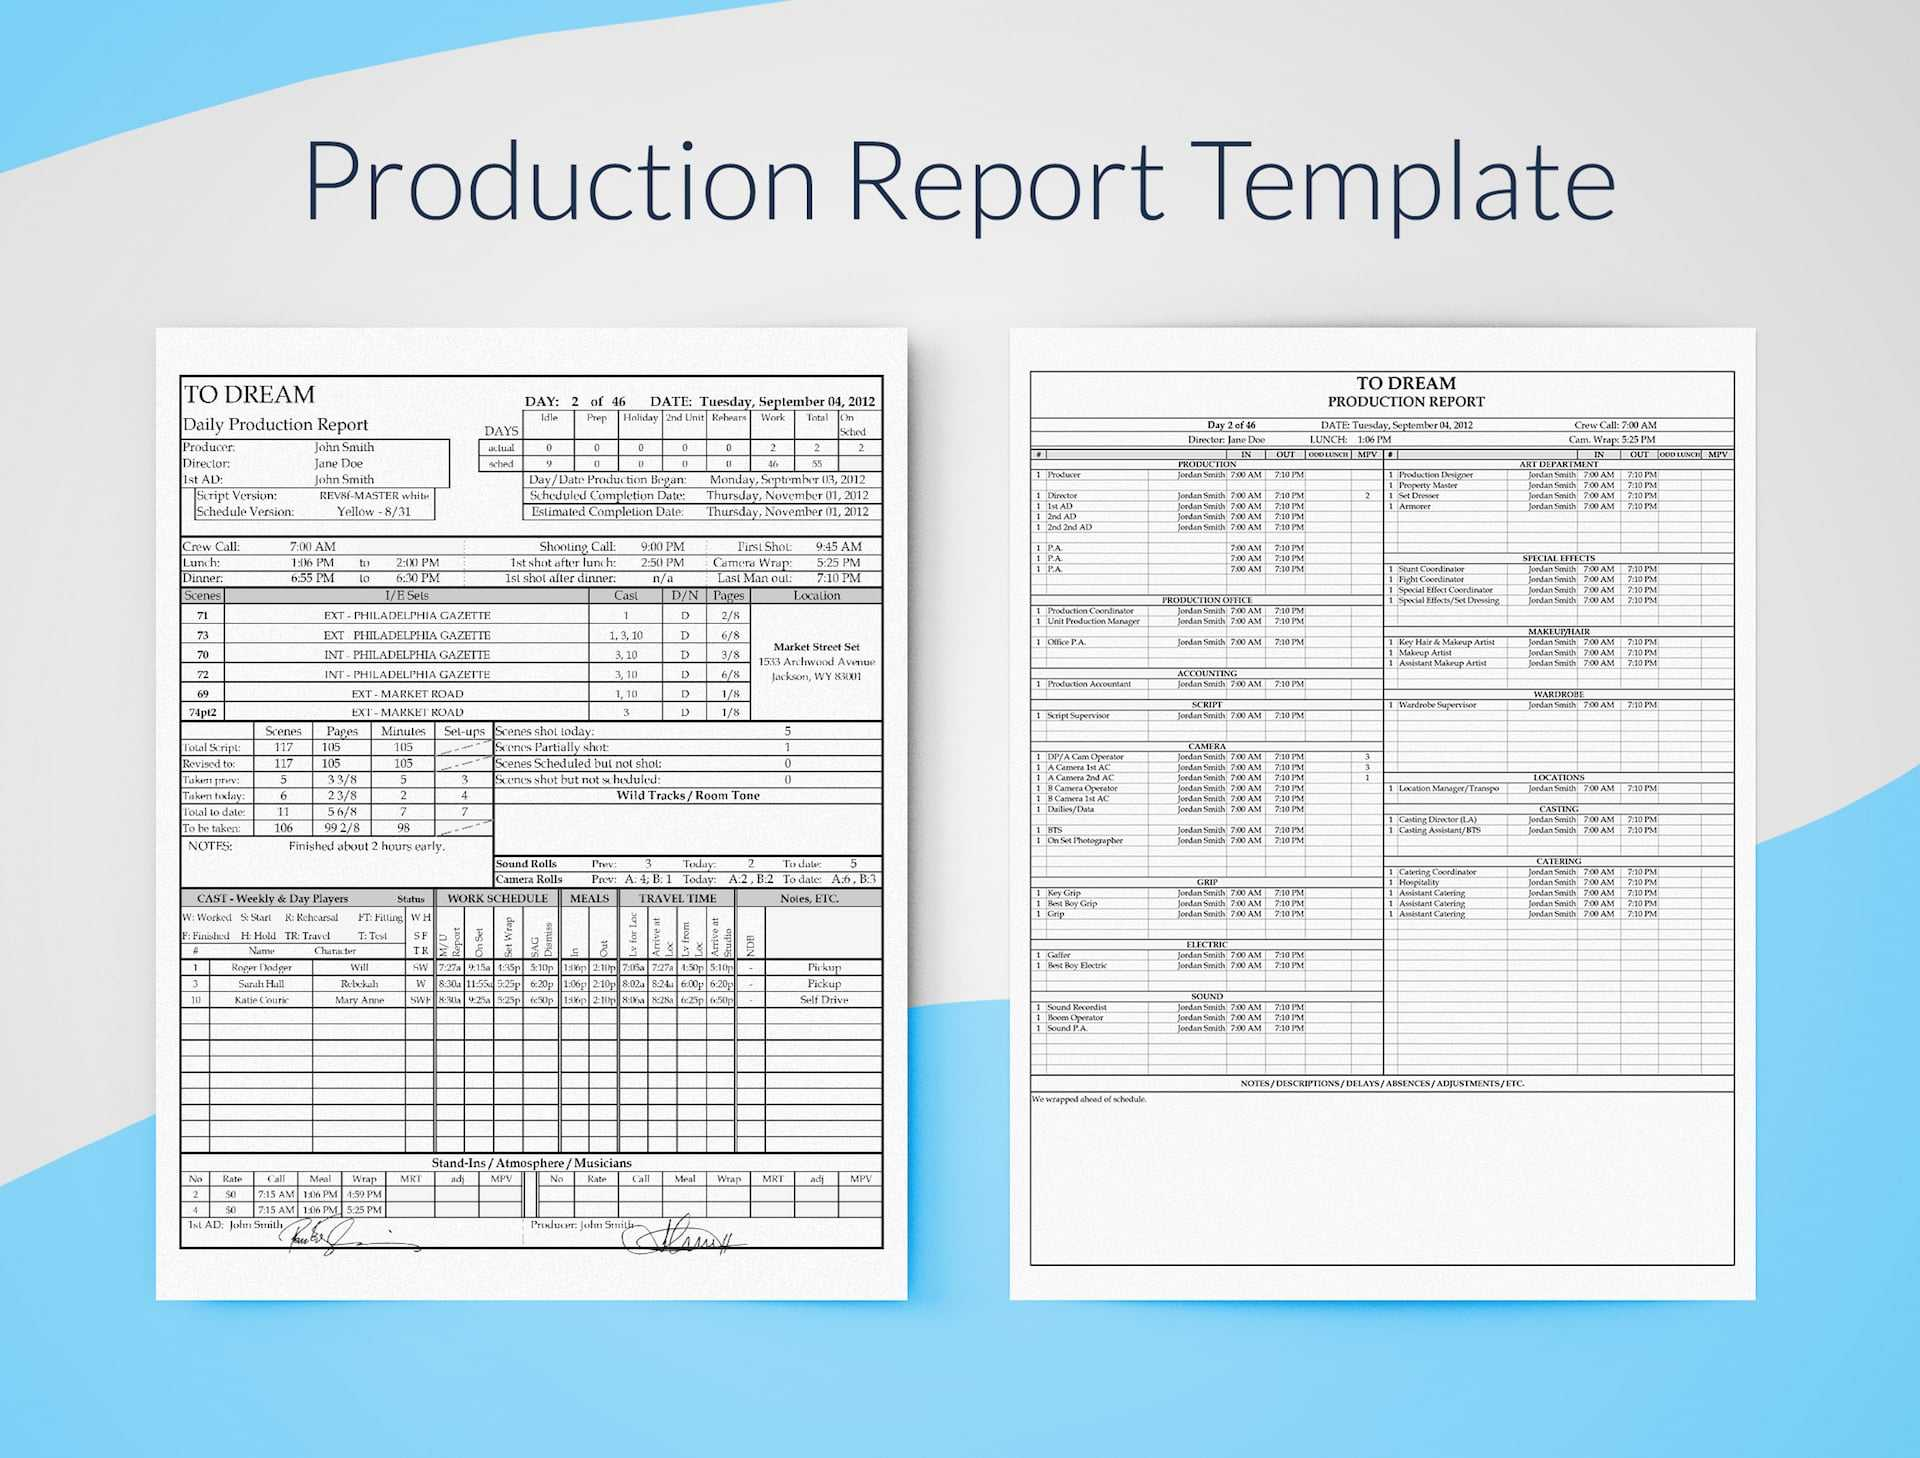 Production Report Template For Excel - Free Download | Sethero Intended For Production Status Report Template